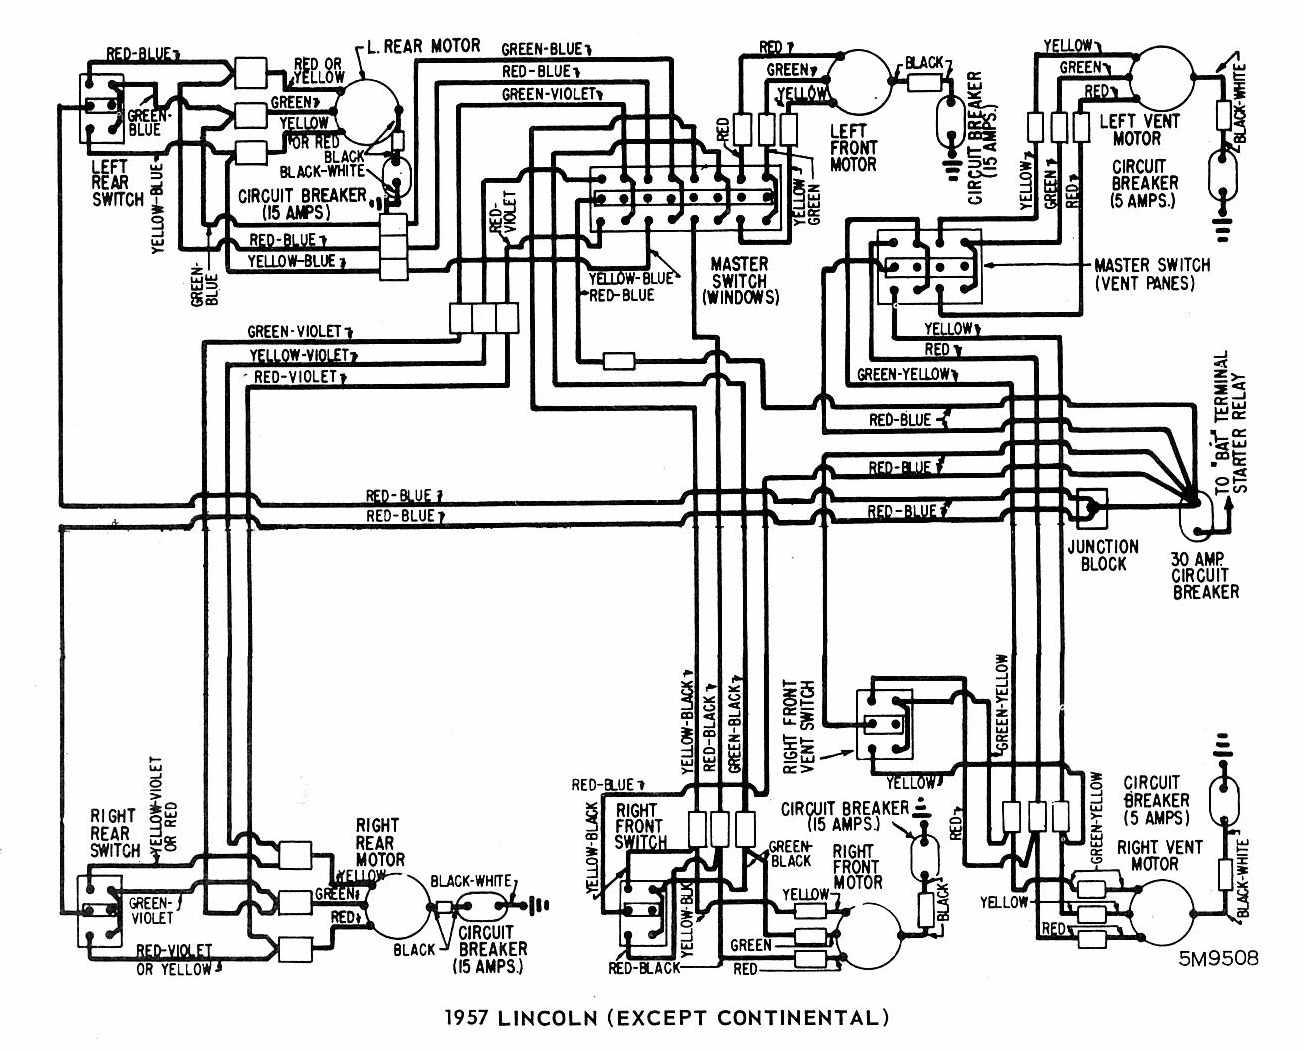 1962 lincoln wiring diagram free wiring diagram for you u2022 lincoln vantage 500 wiring diagram lincoln wiring diagram [ 1304 x 1051 Pixel ]